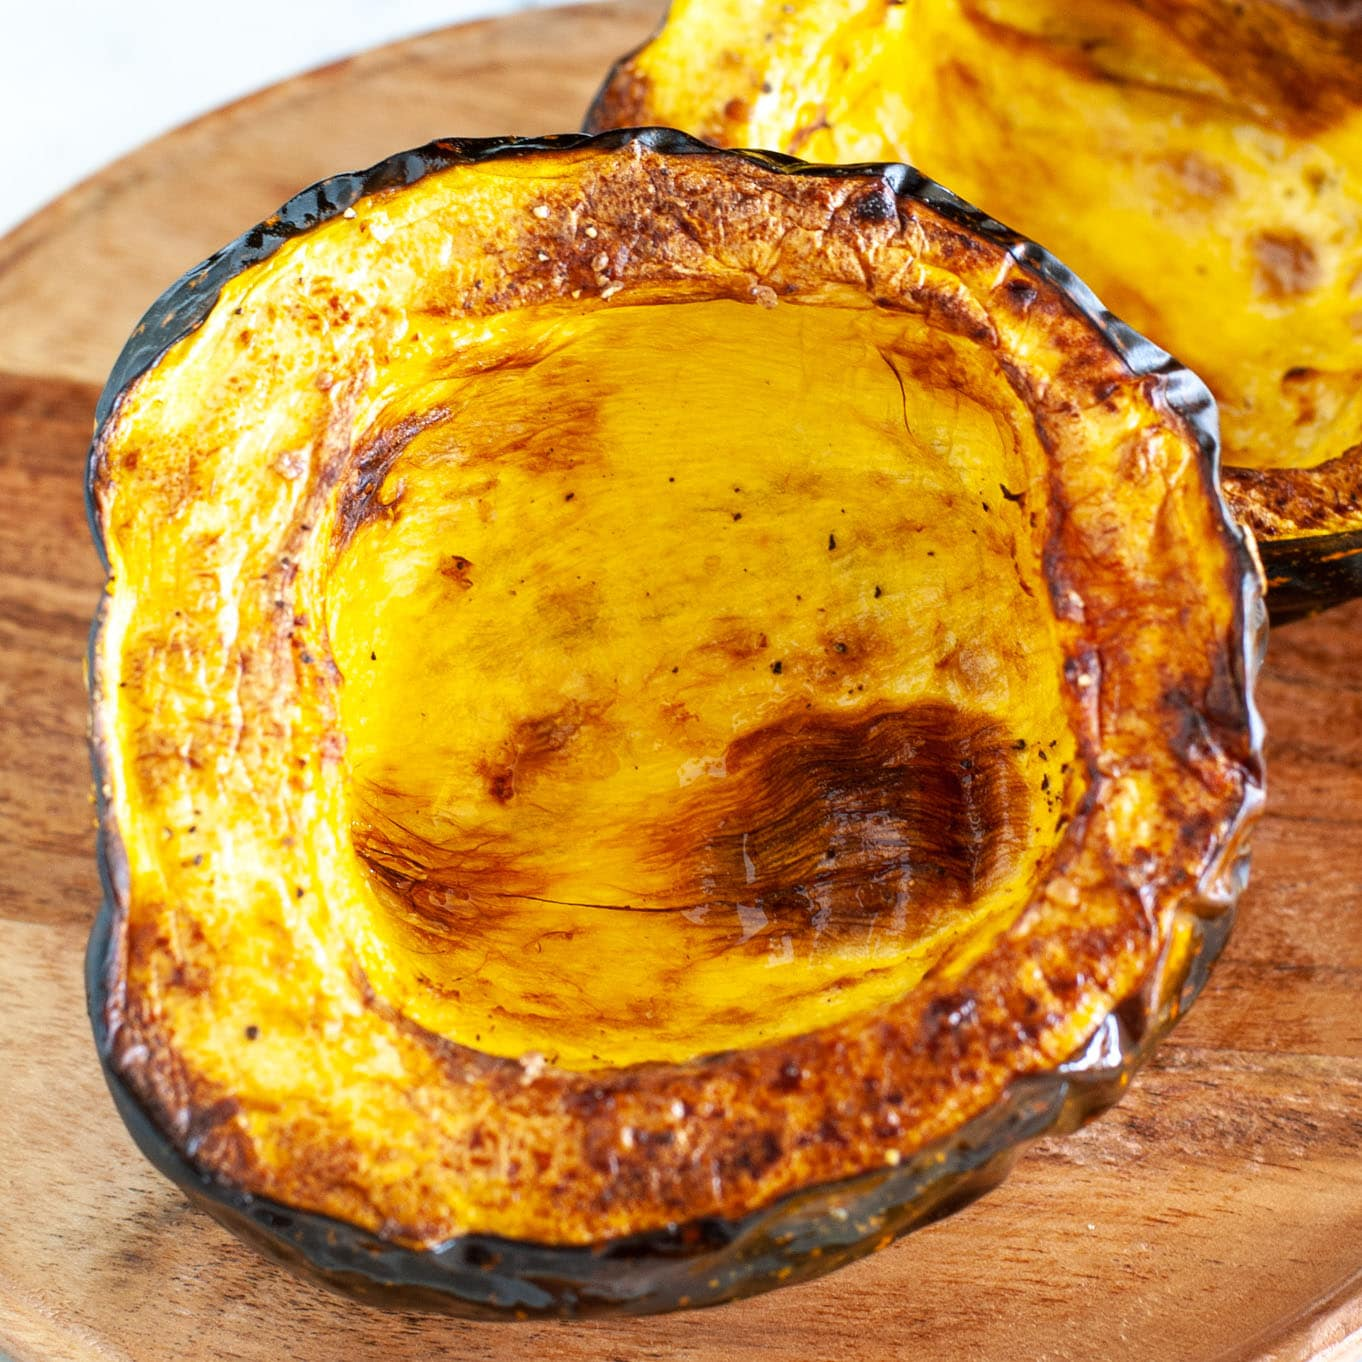 Roasted squash on board.